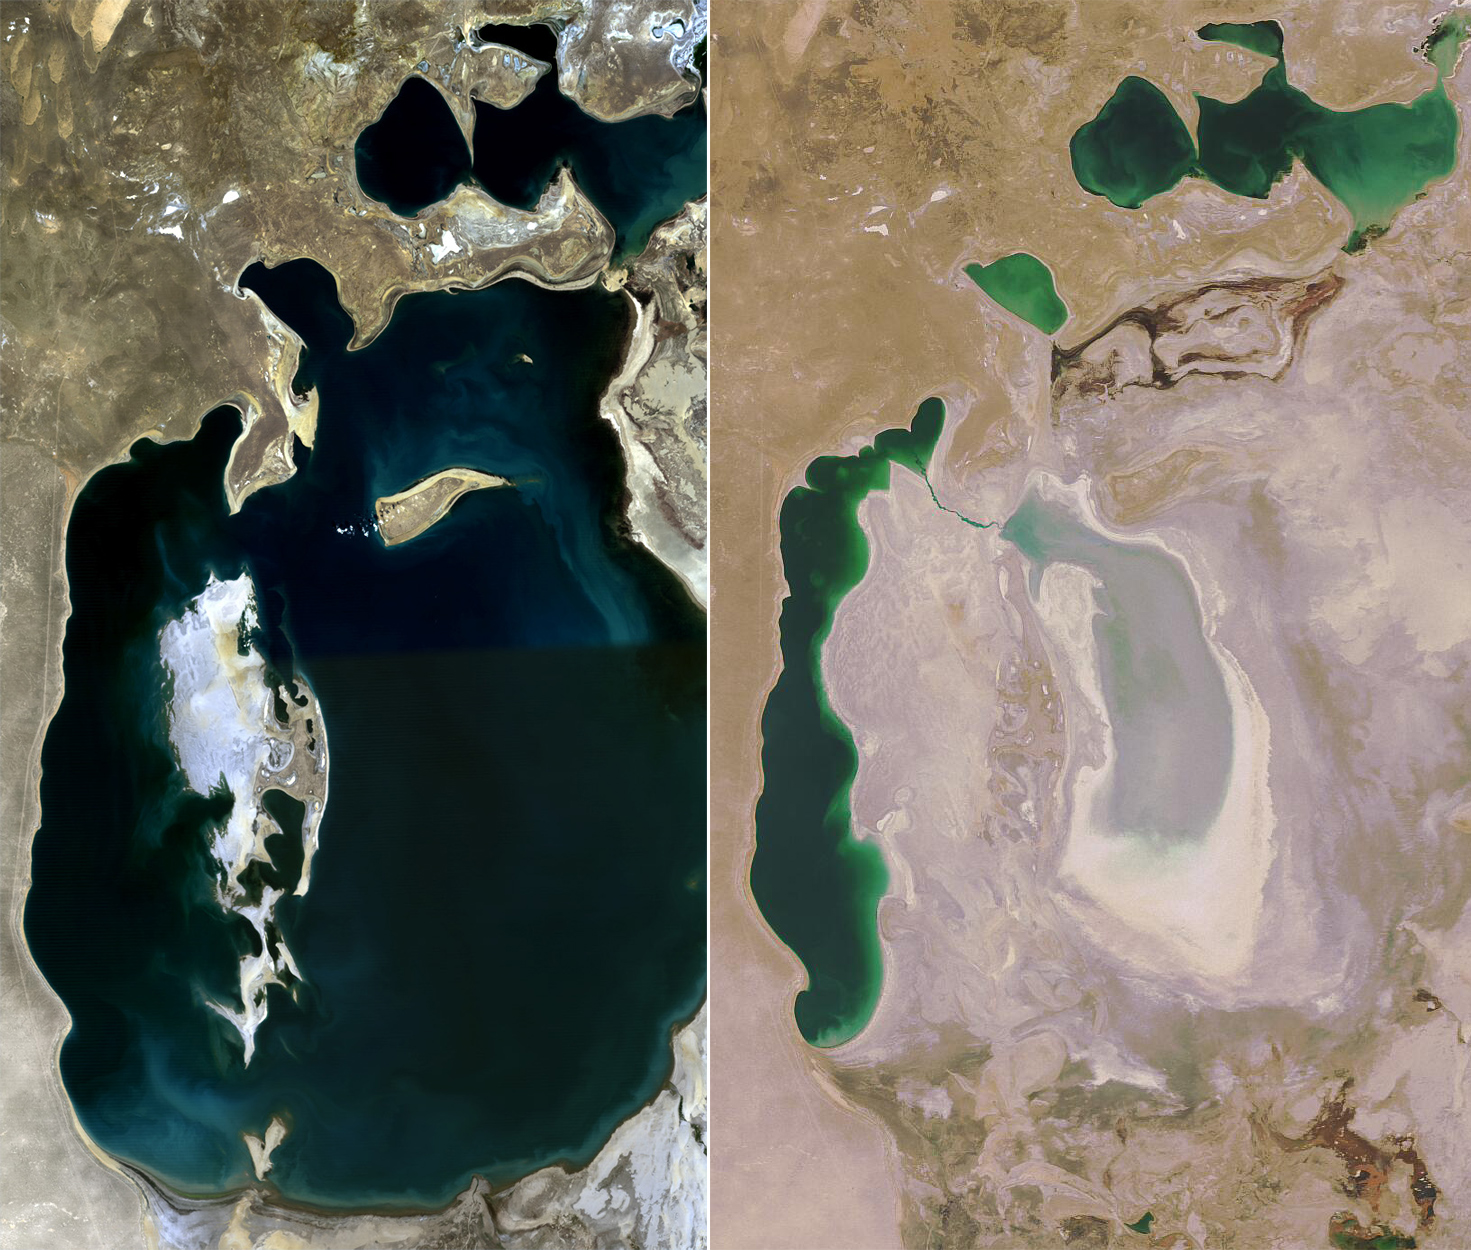 The Aral Sea in 1989 and 2008